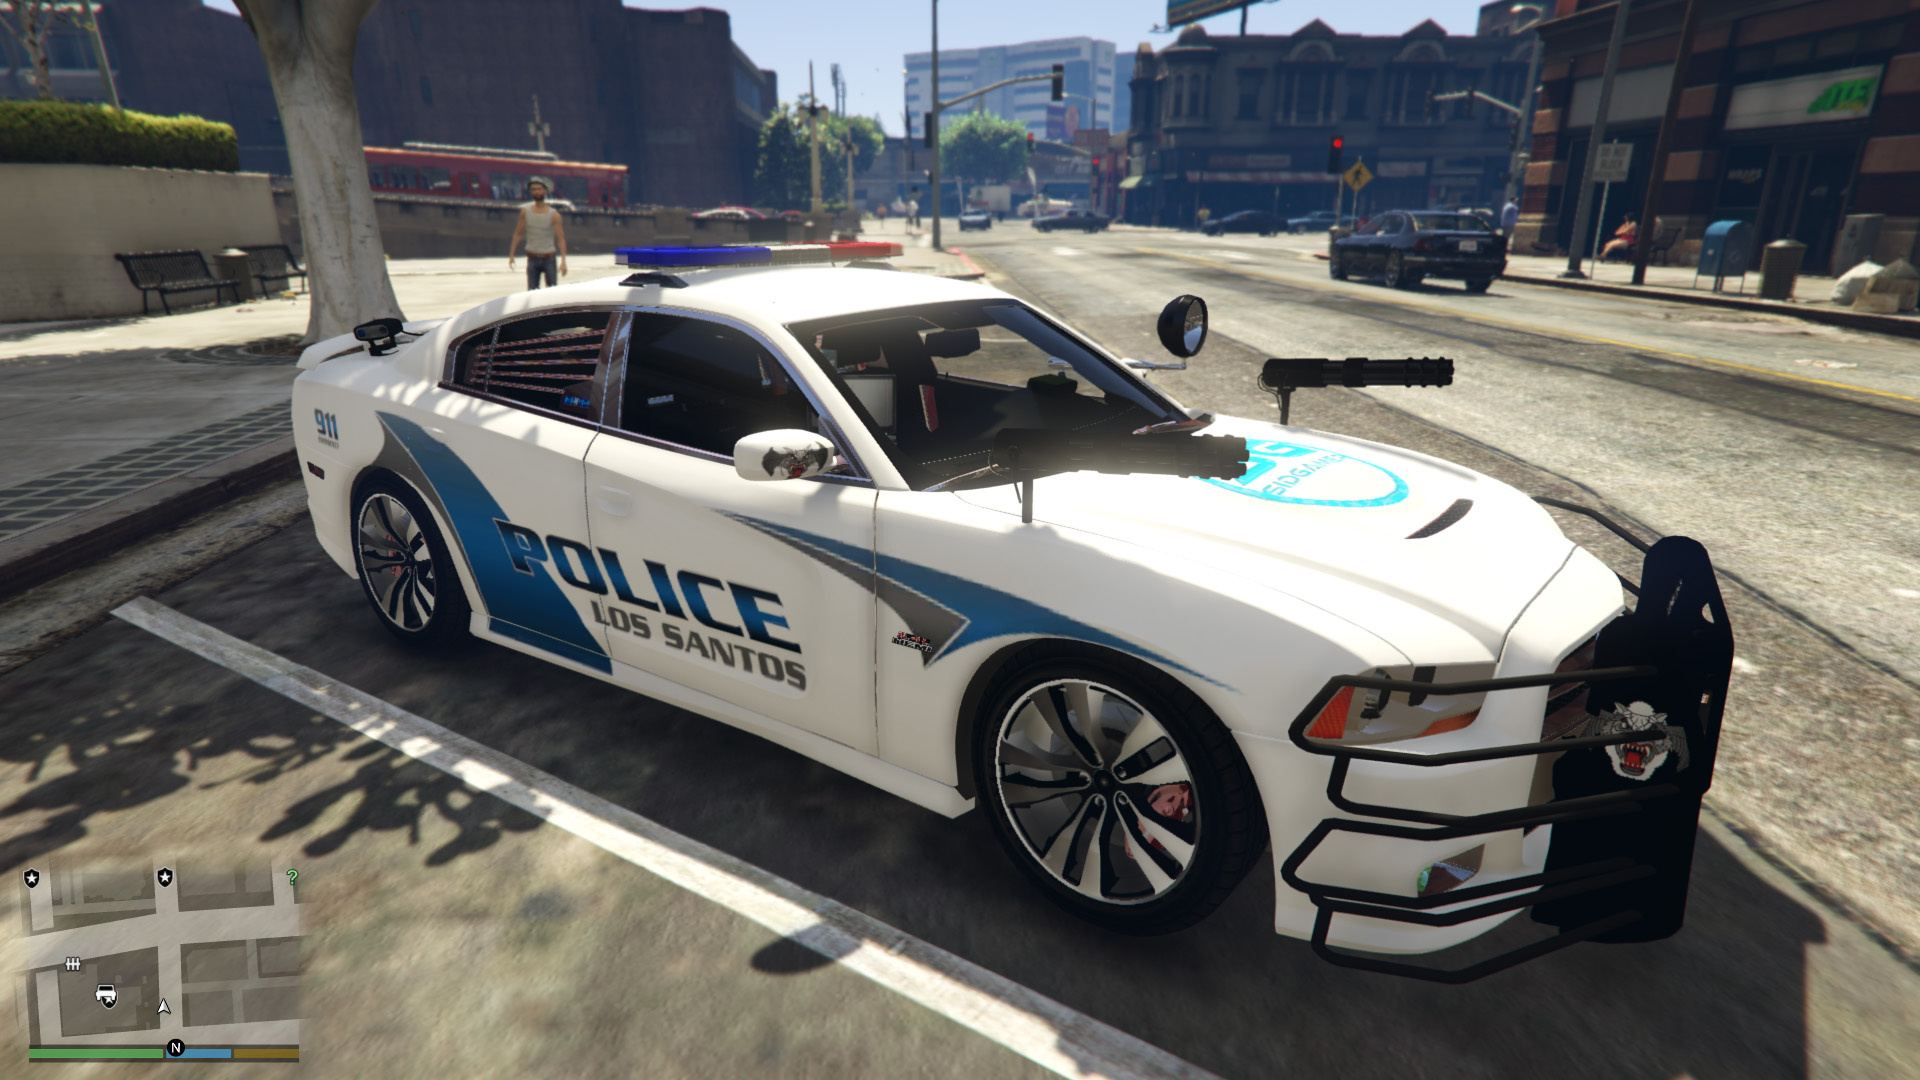 dodge charger srt8 police weapons v 1 gta5. Black Bedroom Furniture Sets. Home Design Ideas